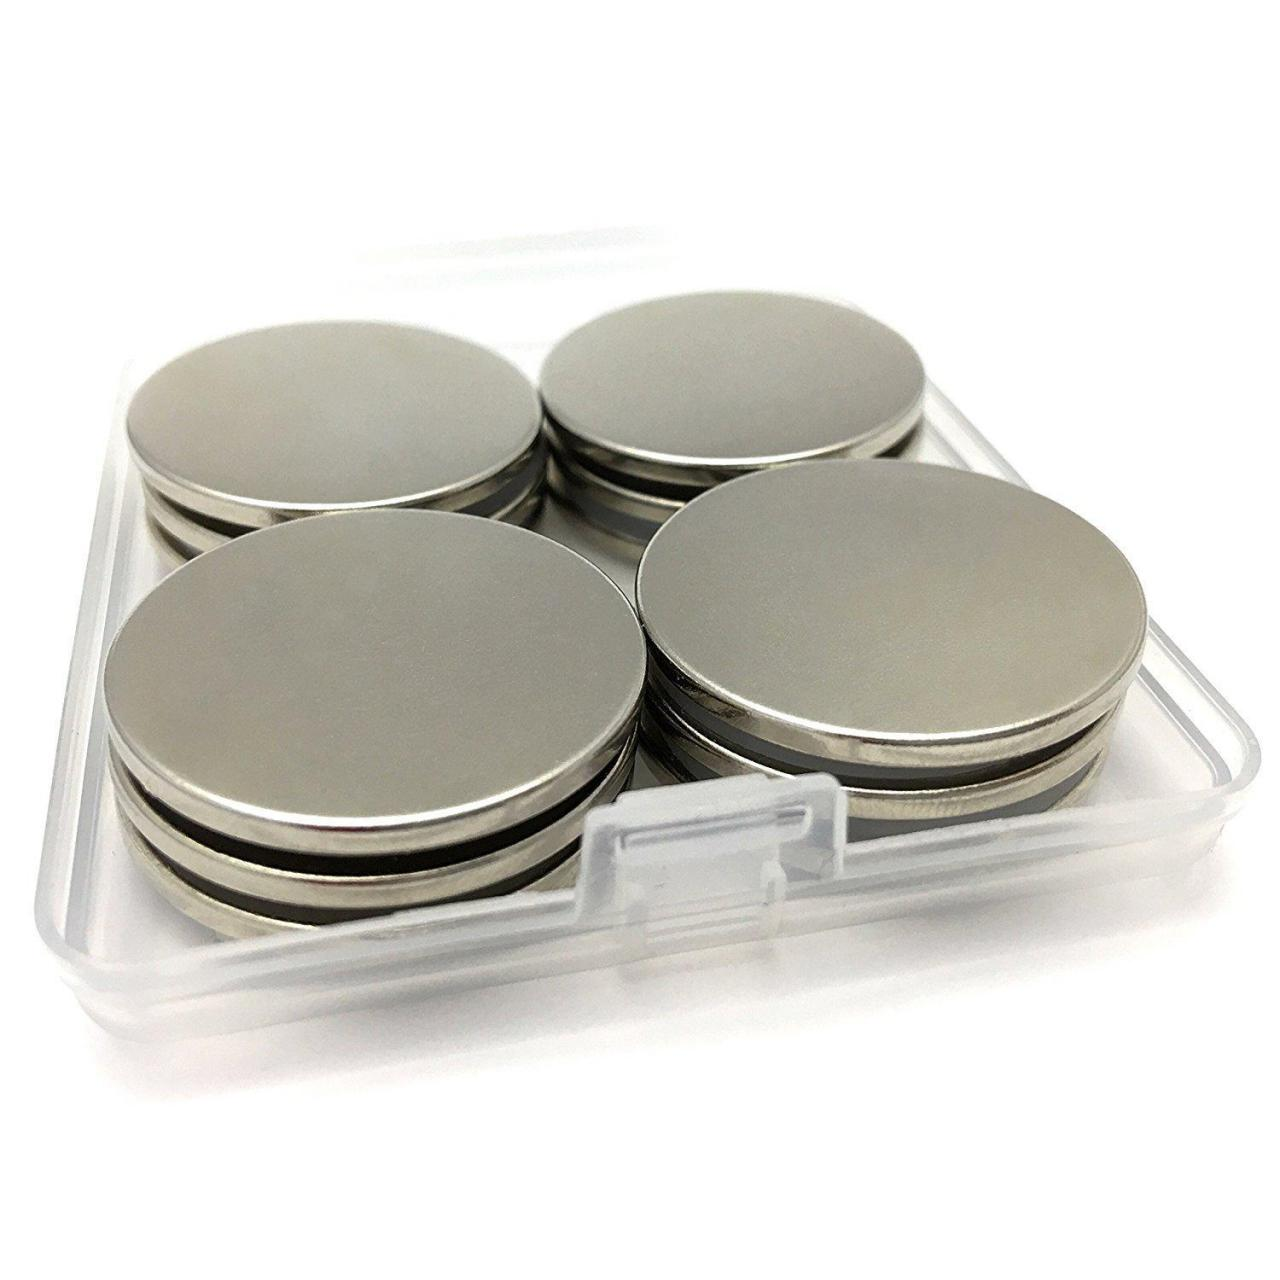 Neodymium Magnets for Crafts Fridge